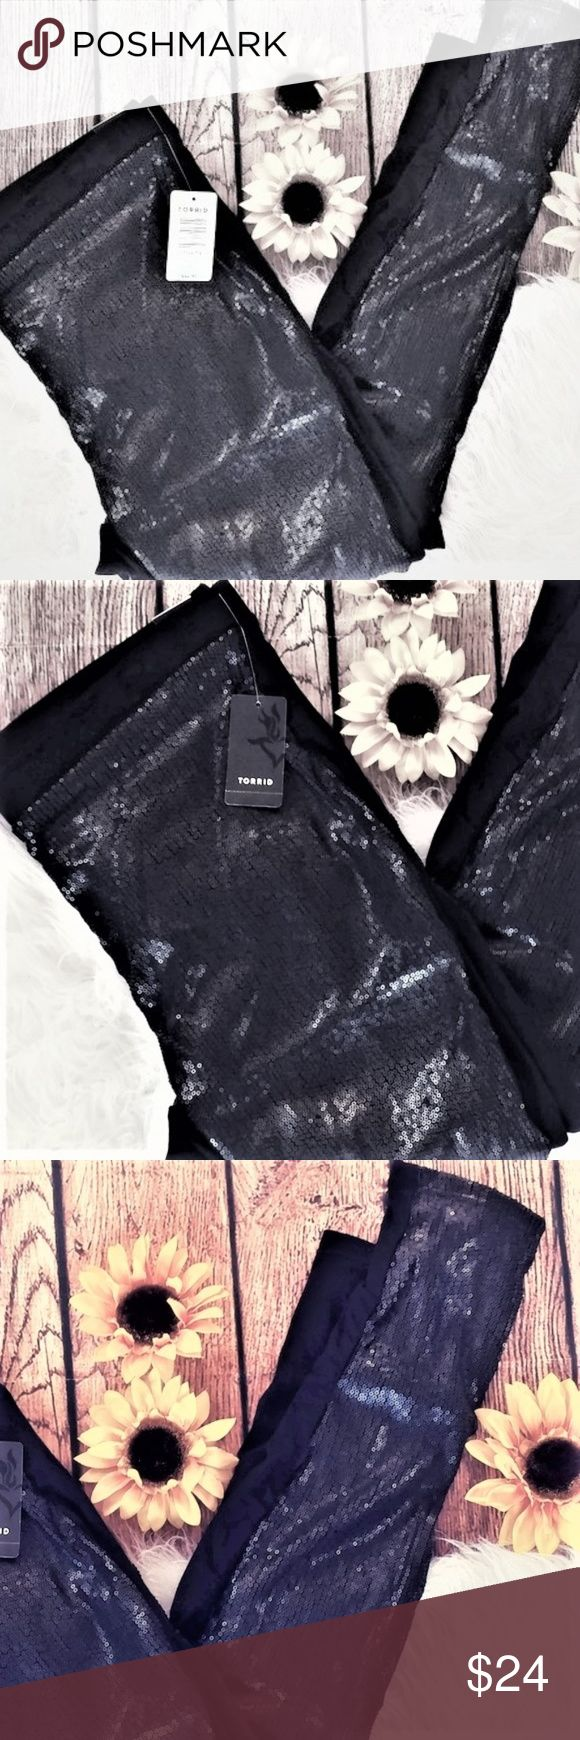 NWT Torrid ON TREND black sequin leggings PLUS 2X NWT Torrid black sequin leggings PLUS SIZE 2X Brand new, never worn. There are two sizes available so please check measurements below. Sequins are only on the front. Gorgeous leggings. Brand new, never worn. 95% cotton, 5% spandex So on Trend for SPRING 2018, Pair with Sequin Tank and Sandals!! Size: 2:  Waist: 17 inches Length: 38 inches Inseam: 28.5 inches  Rise: 10 inches torrid Pants Leggings